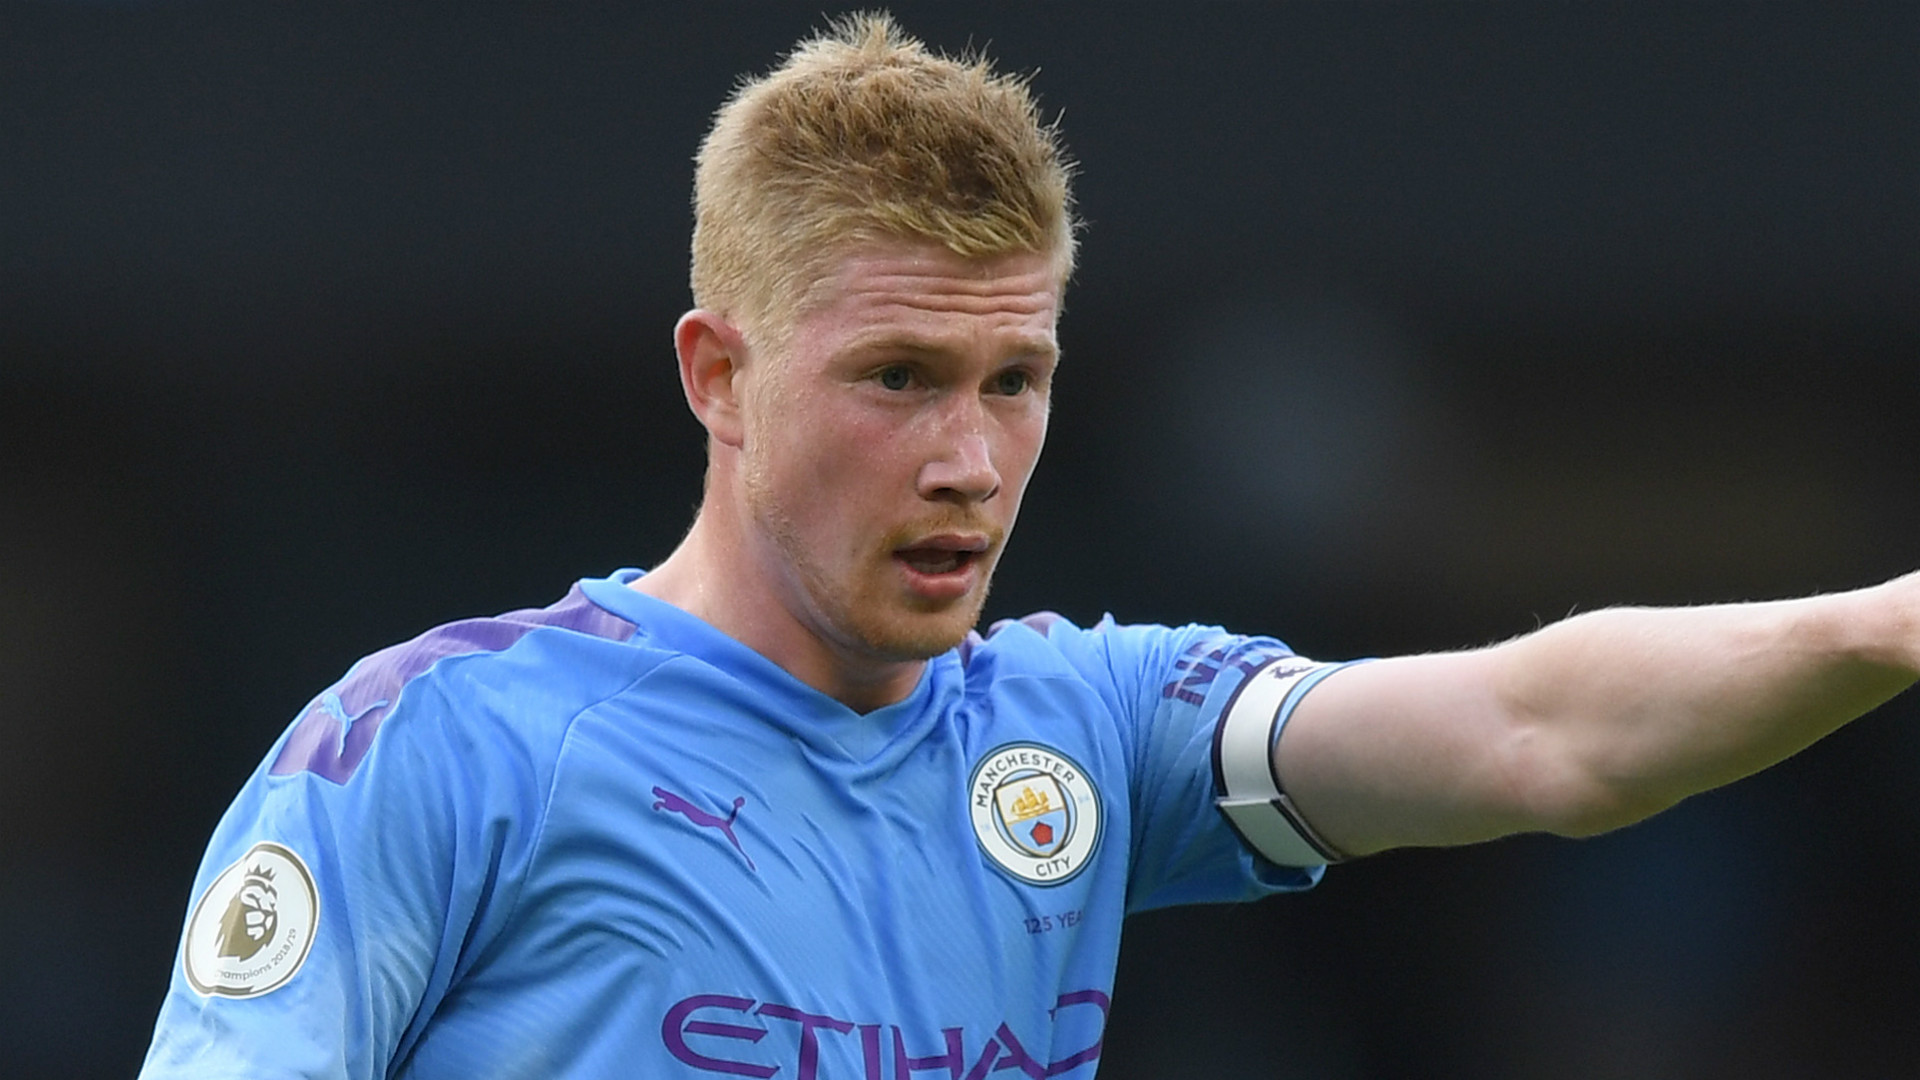 Guardiola confirms De Bruyne out for Wolves clash